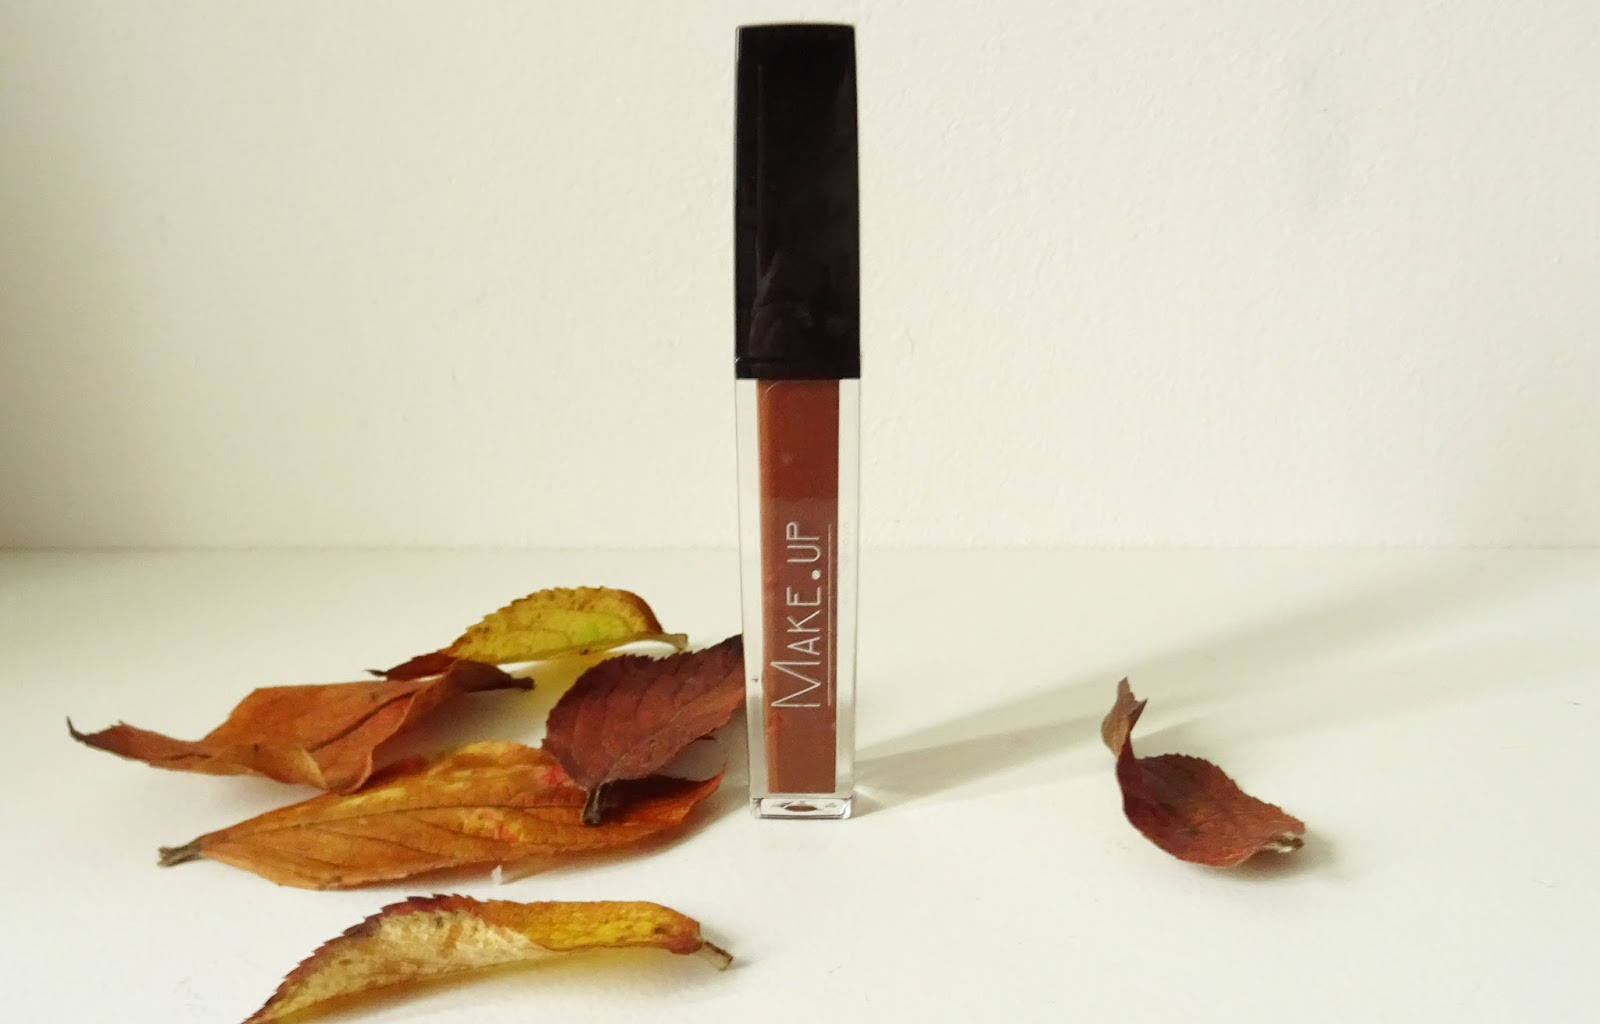 Friday Lipstick LipSinfonia by Charlayn